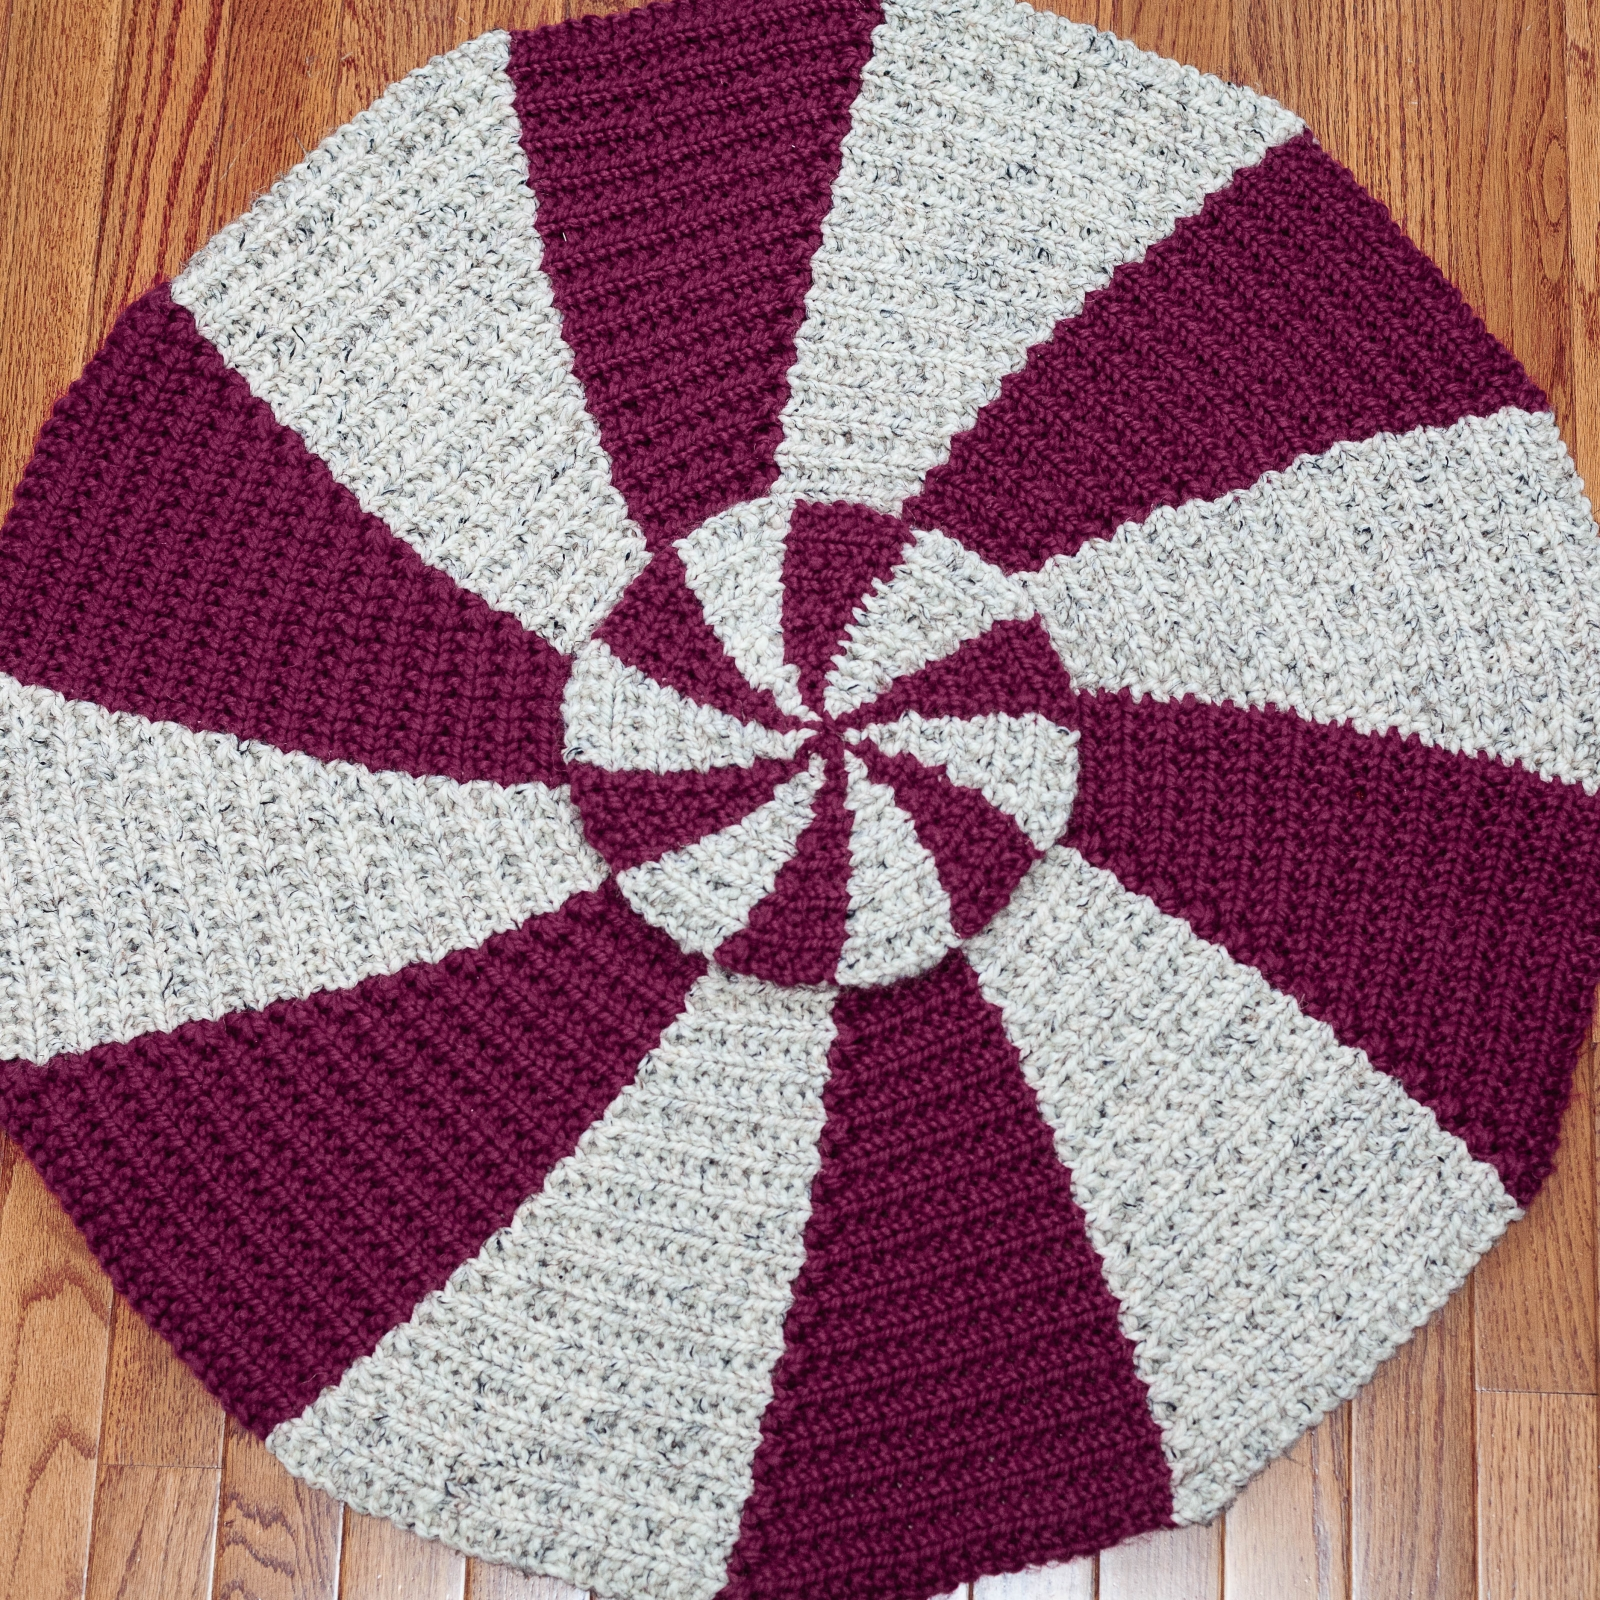 Loom Knit Rug Pattern Starlight Peppermint Pinwheel This Moment Is Good